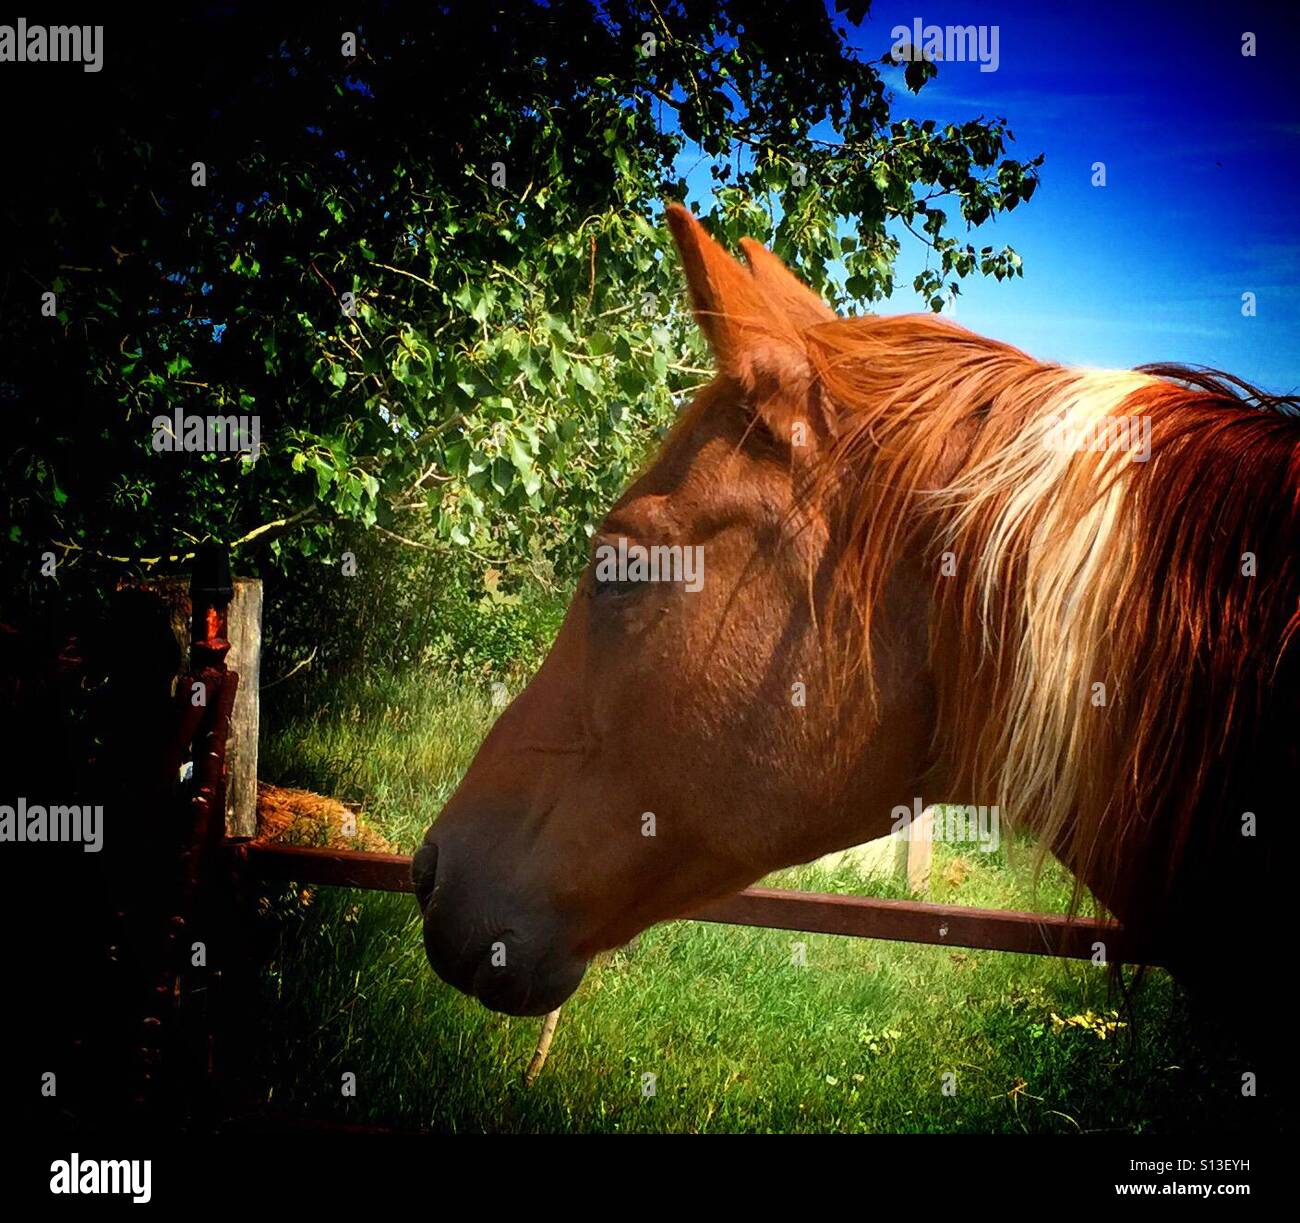 Friendly fellow - Stock Image